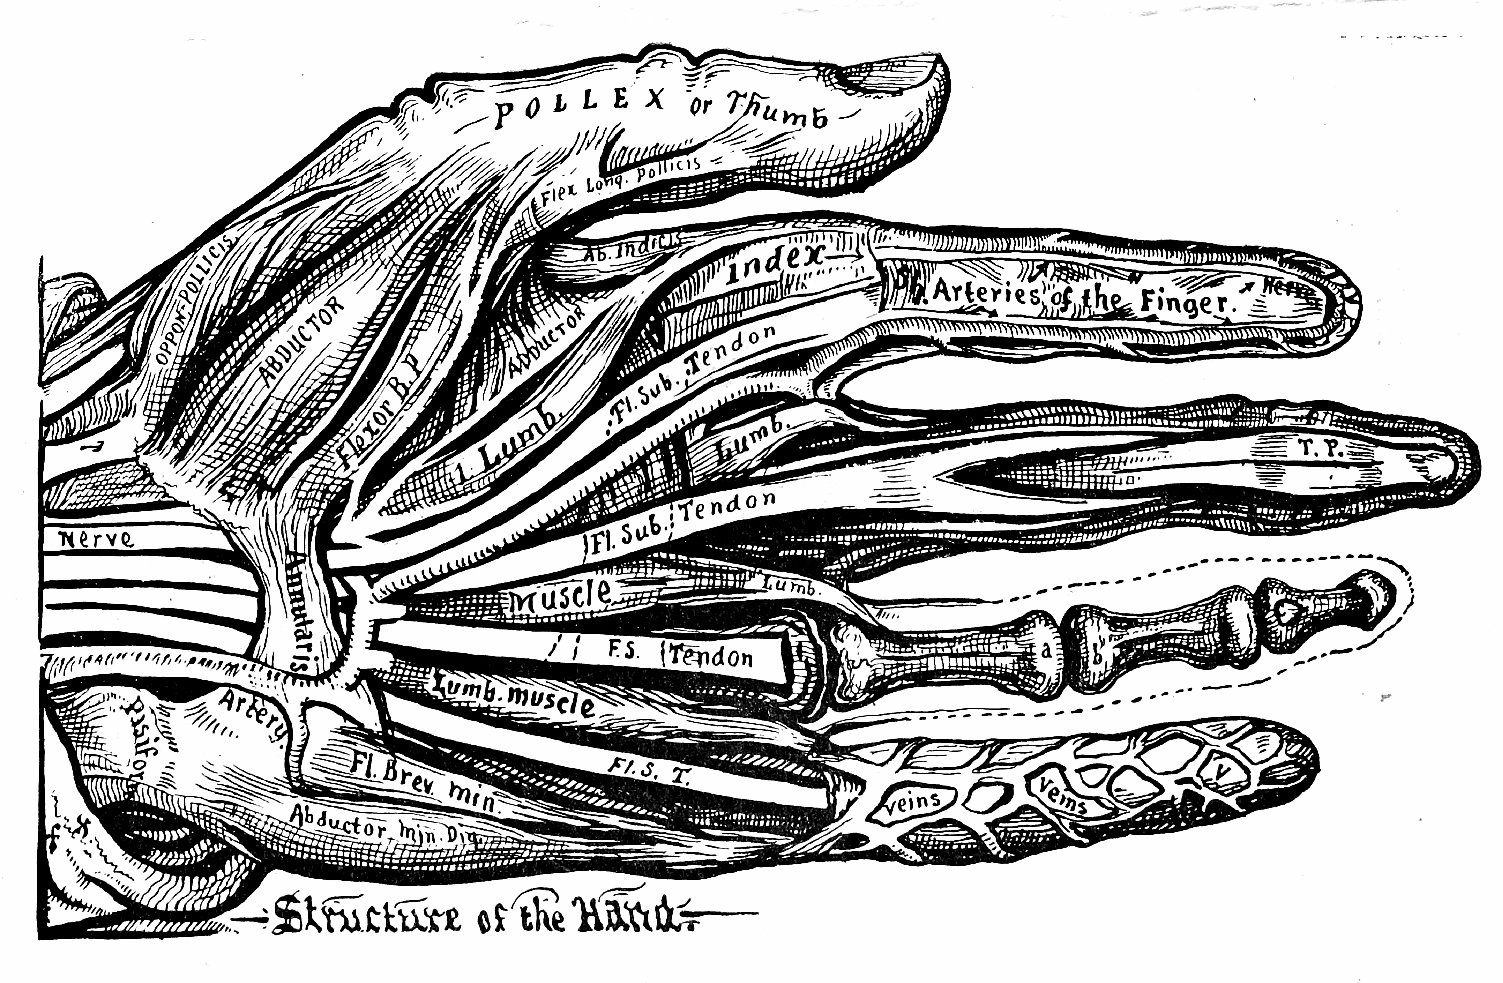 52_structure_of_the_hand.jpg